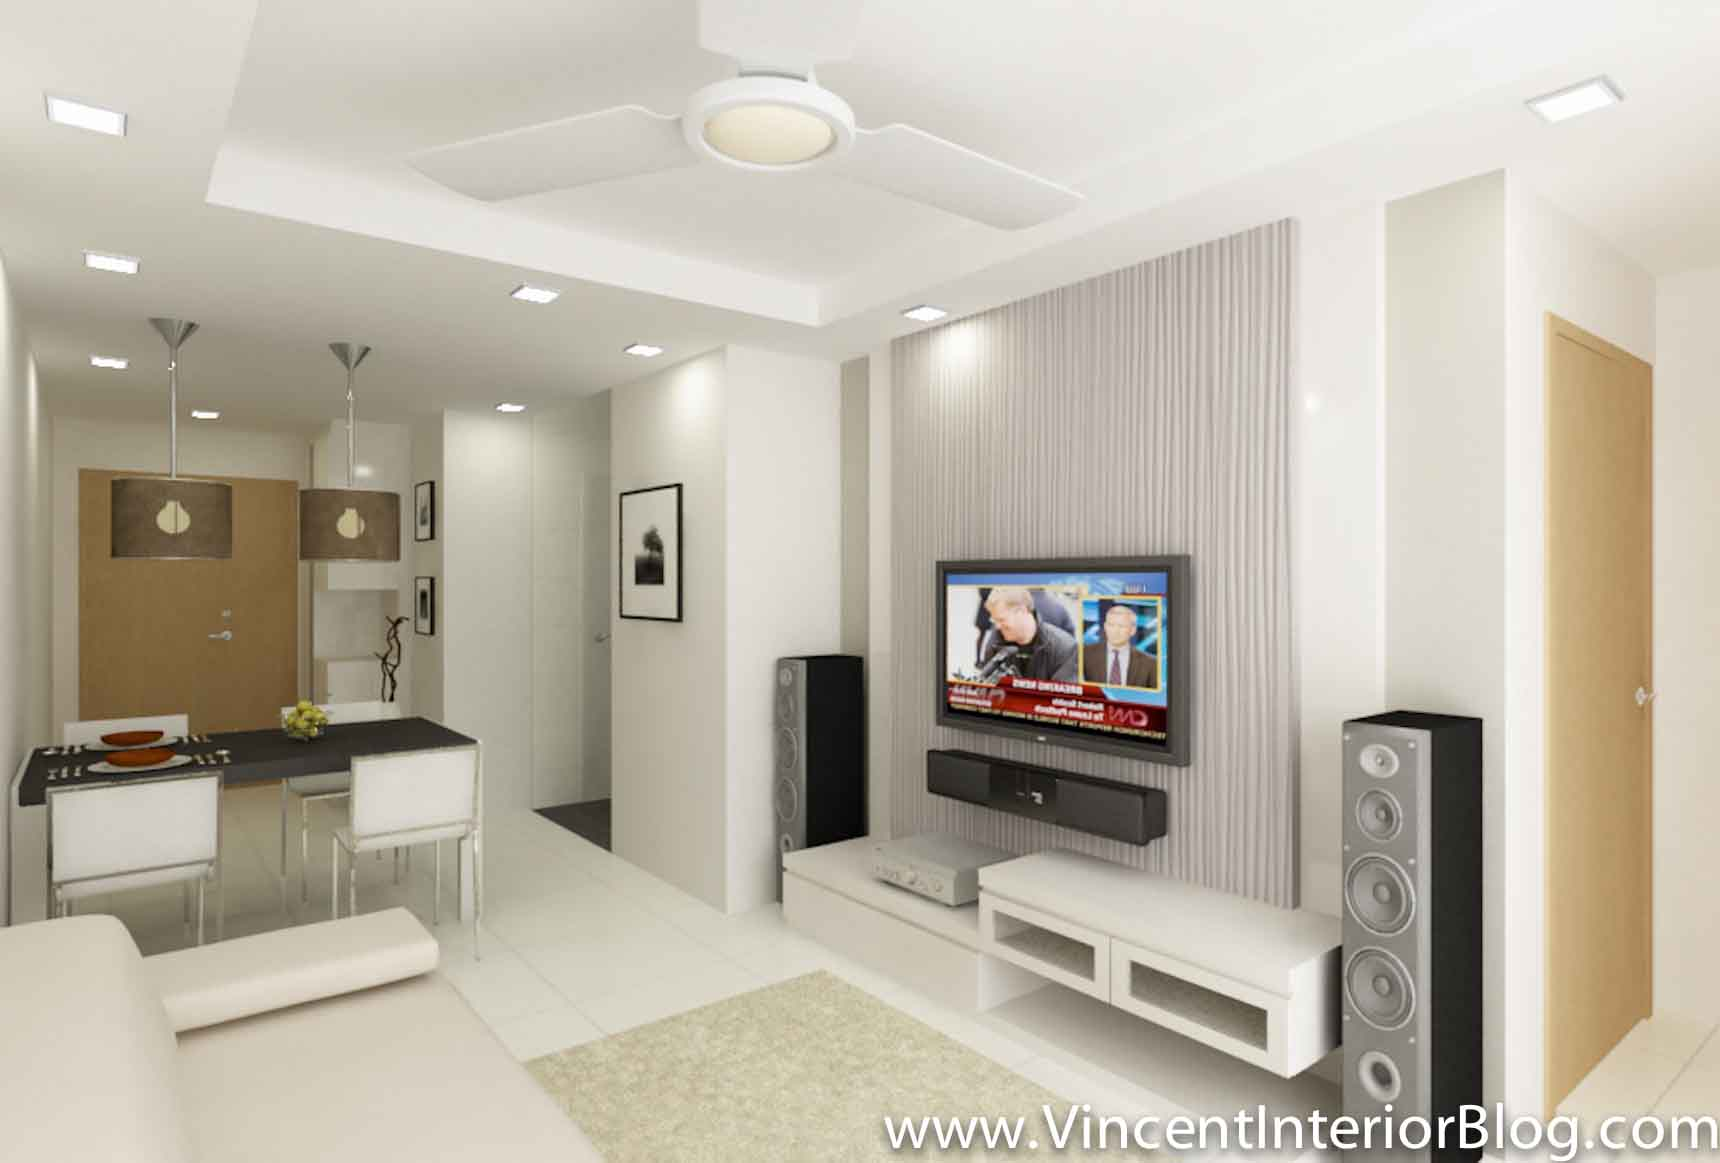 3 Bto Hdb Room Interior Design Ideas